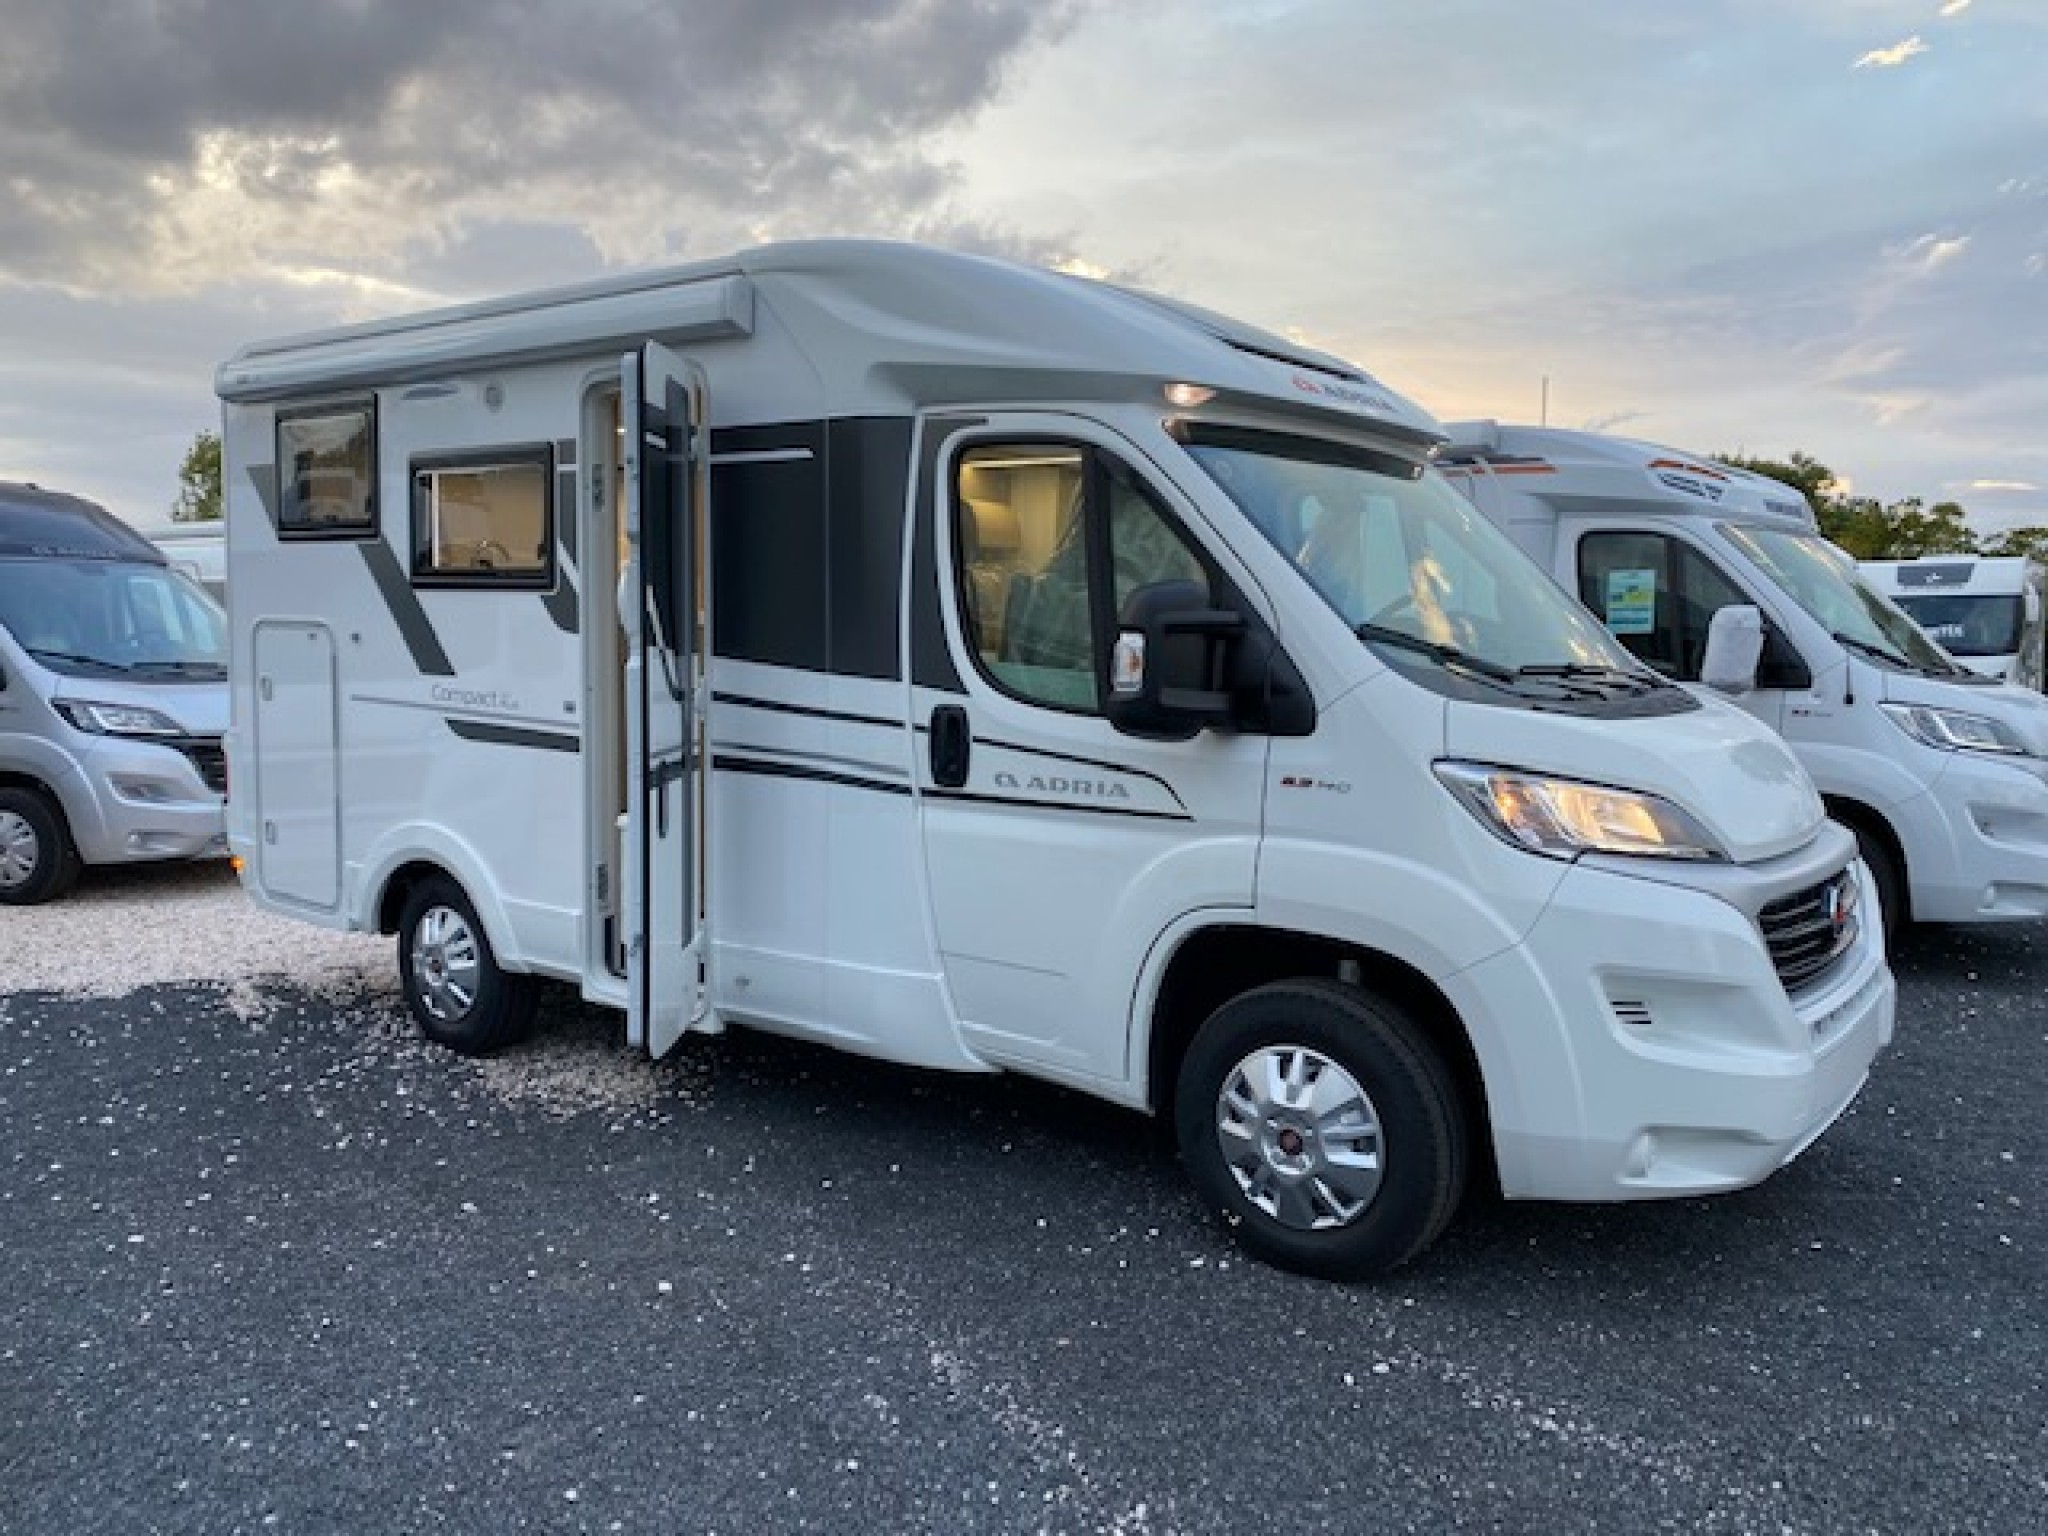 Camping-car ADRIA COMPACT SP PLUS